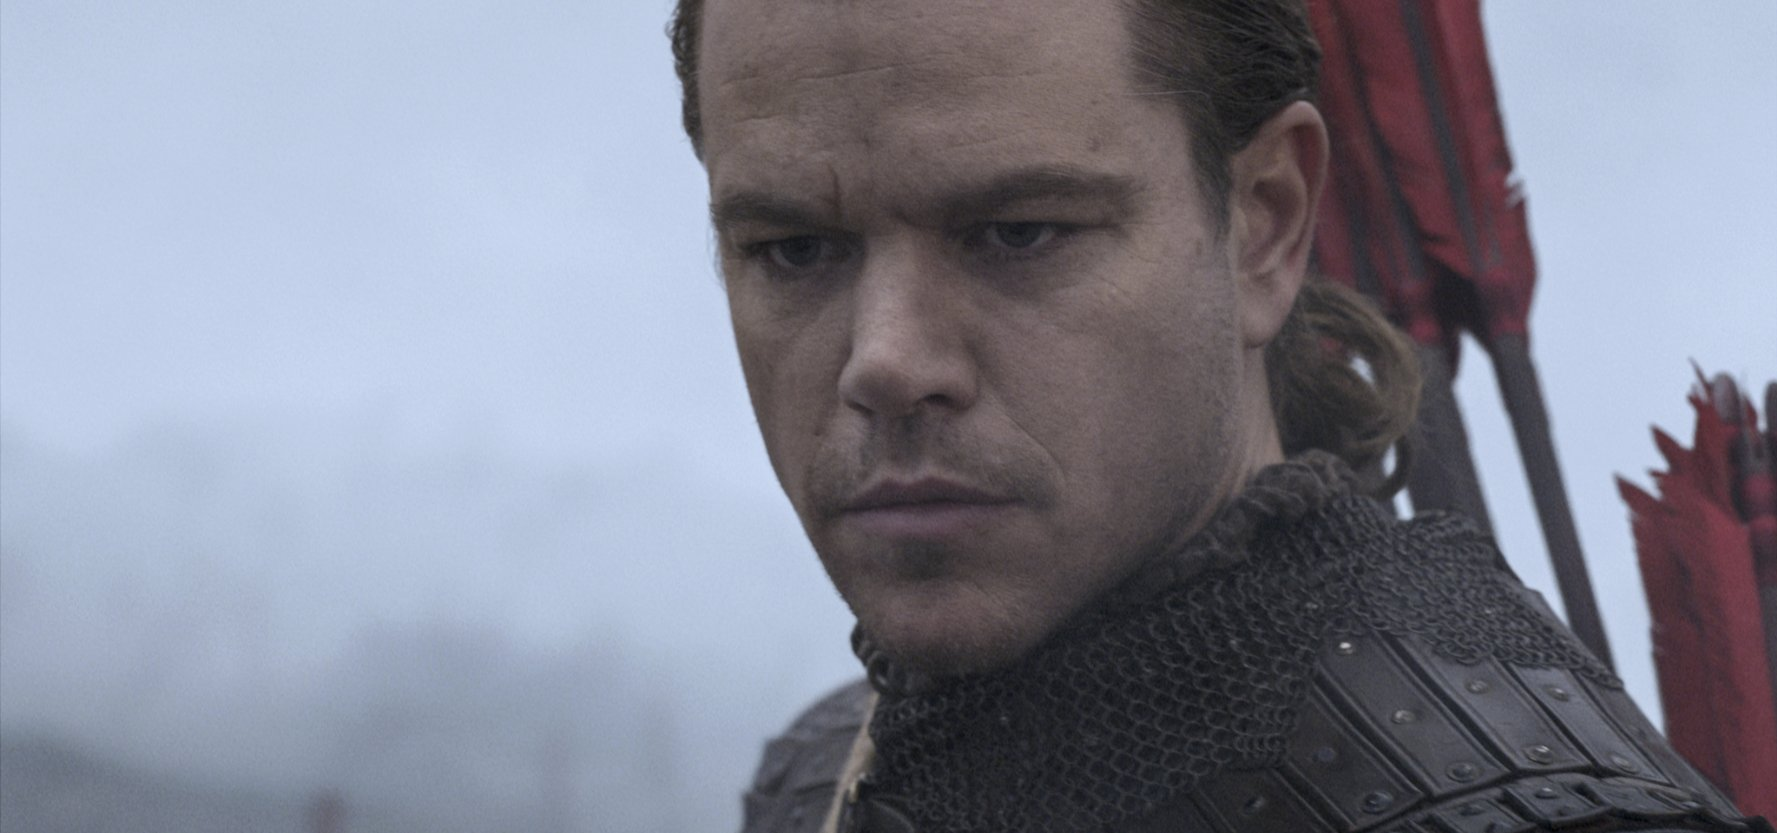 Matt Damon in The Great Wall (2016)